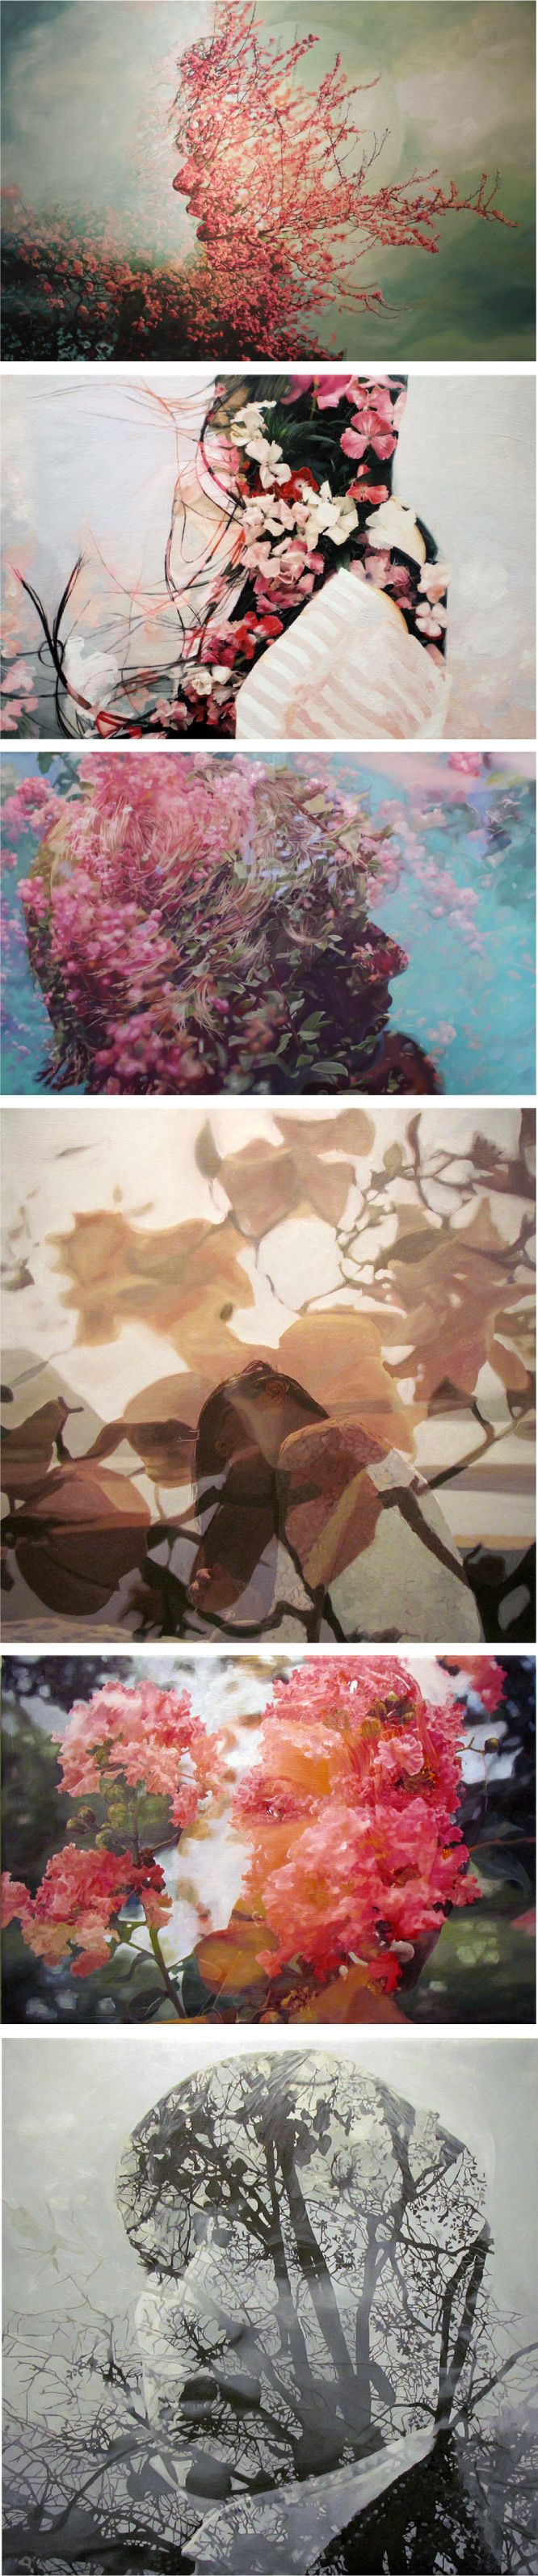 Pakayla Biehn - actual paintings based on double exposures